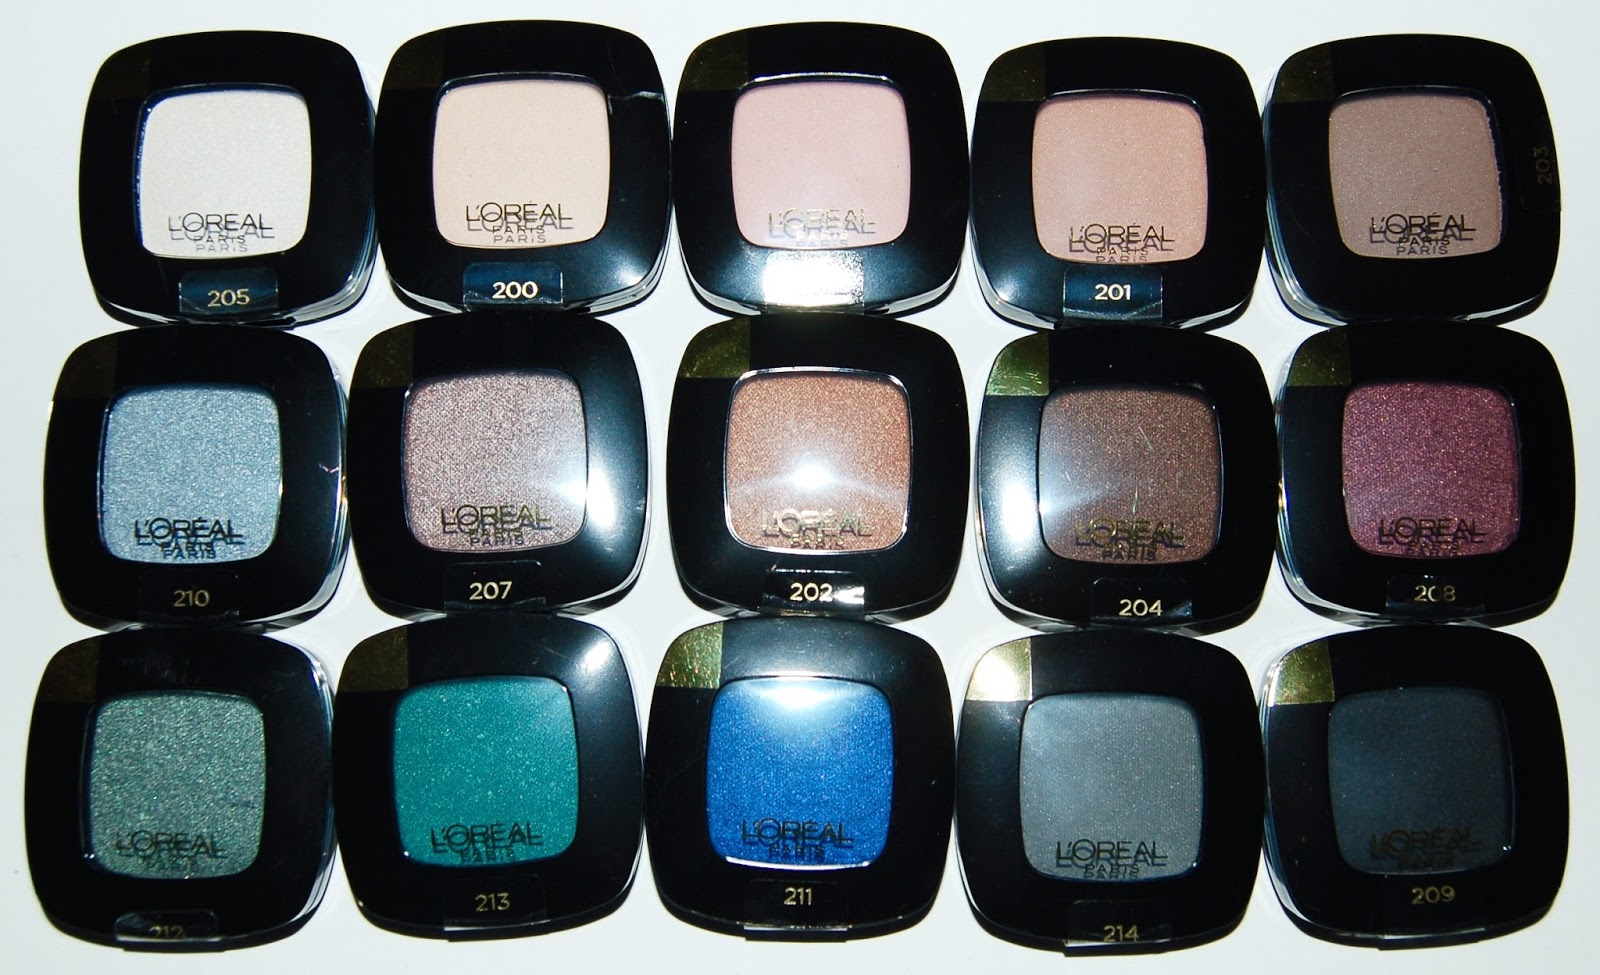 L'Oreal Colour Riche Eyeshadow Monos